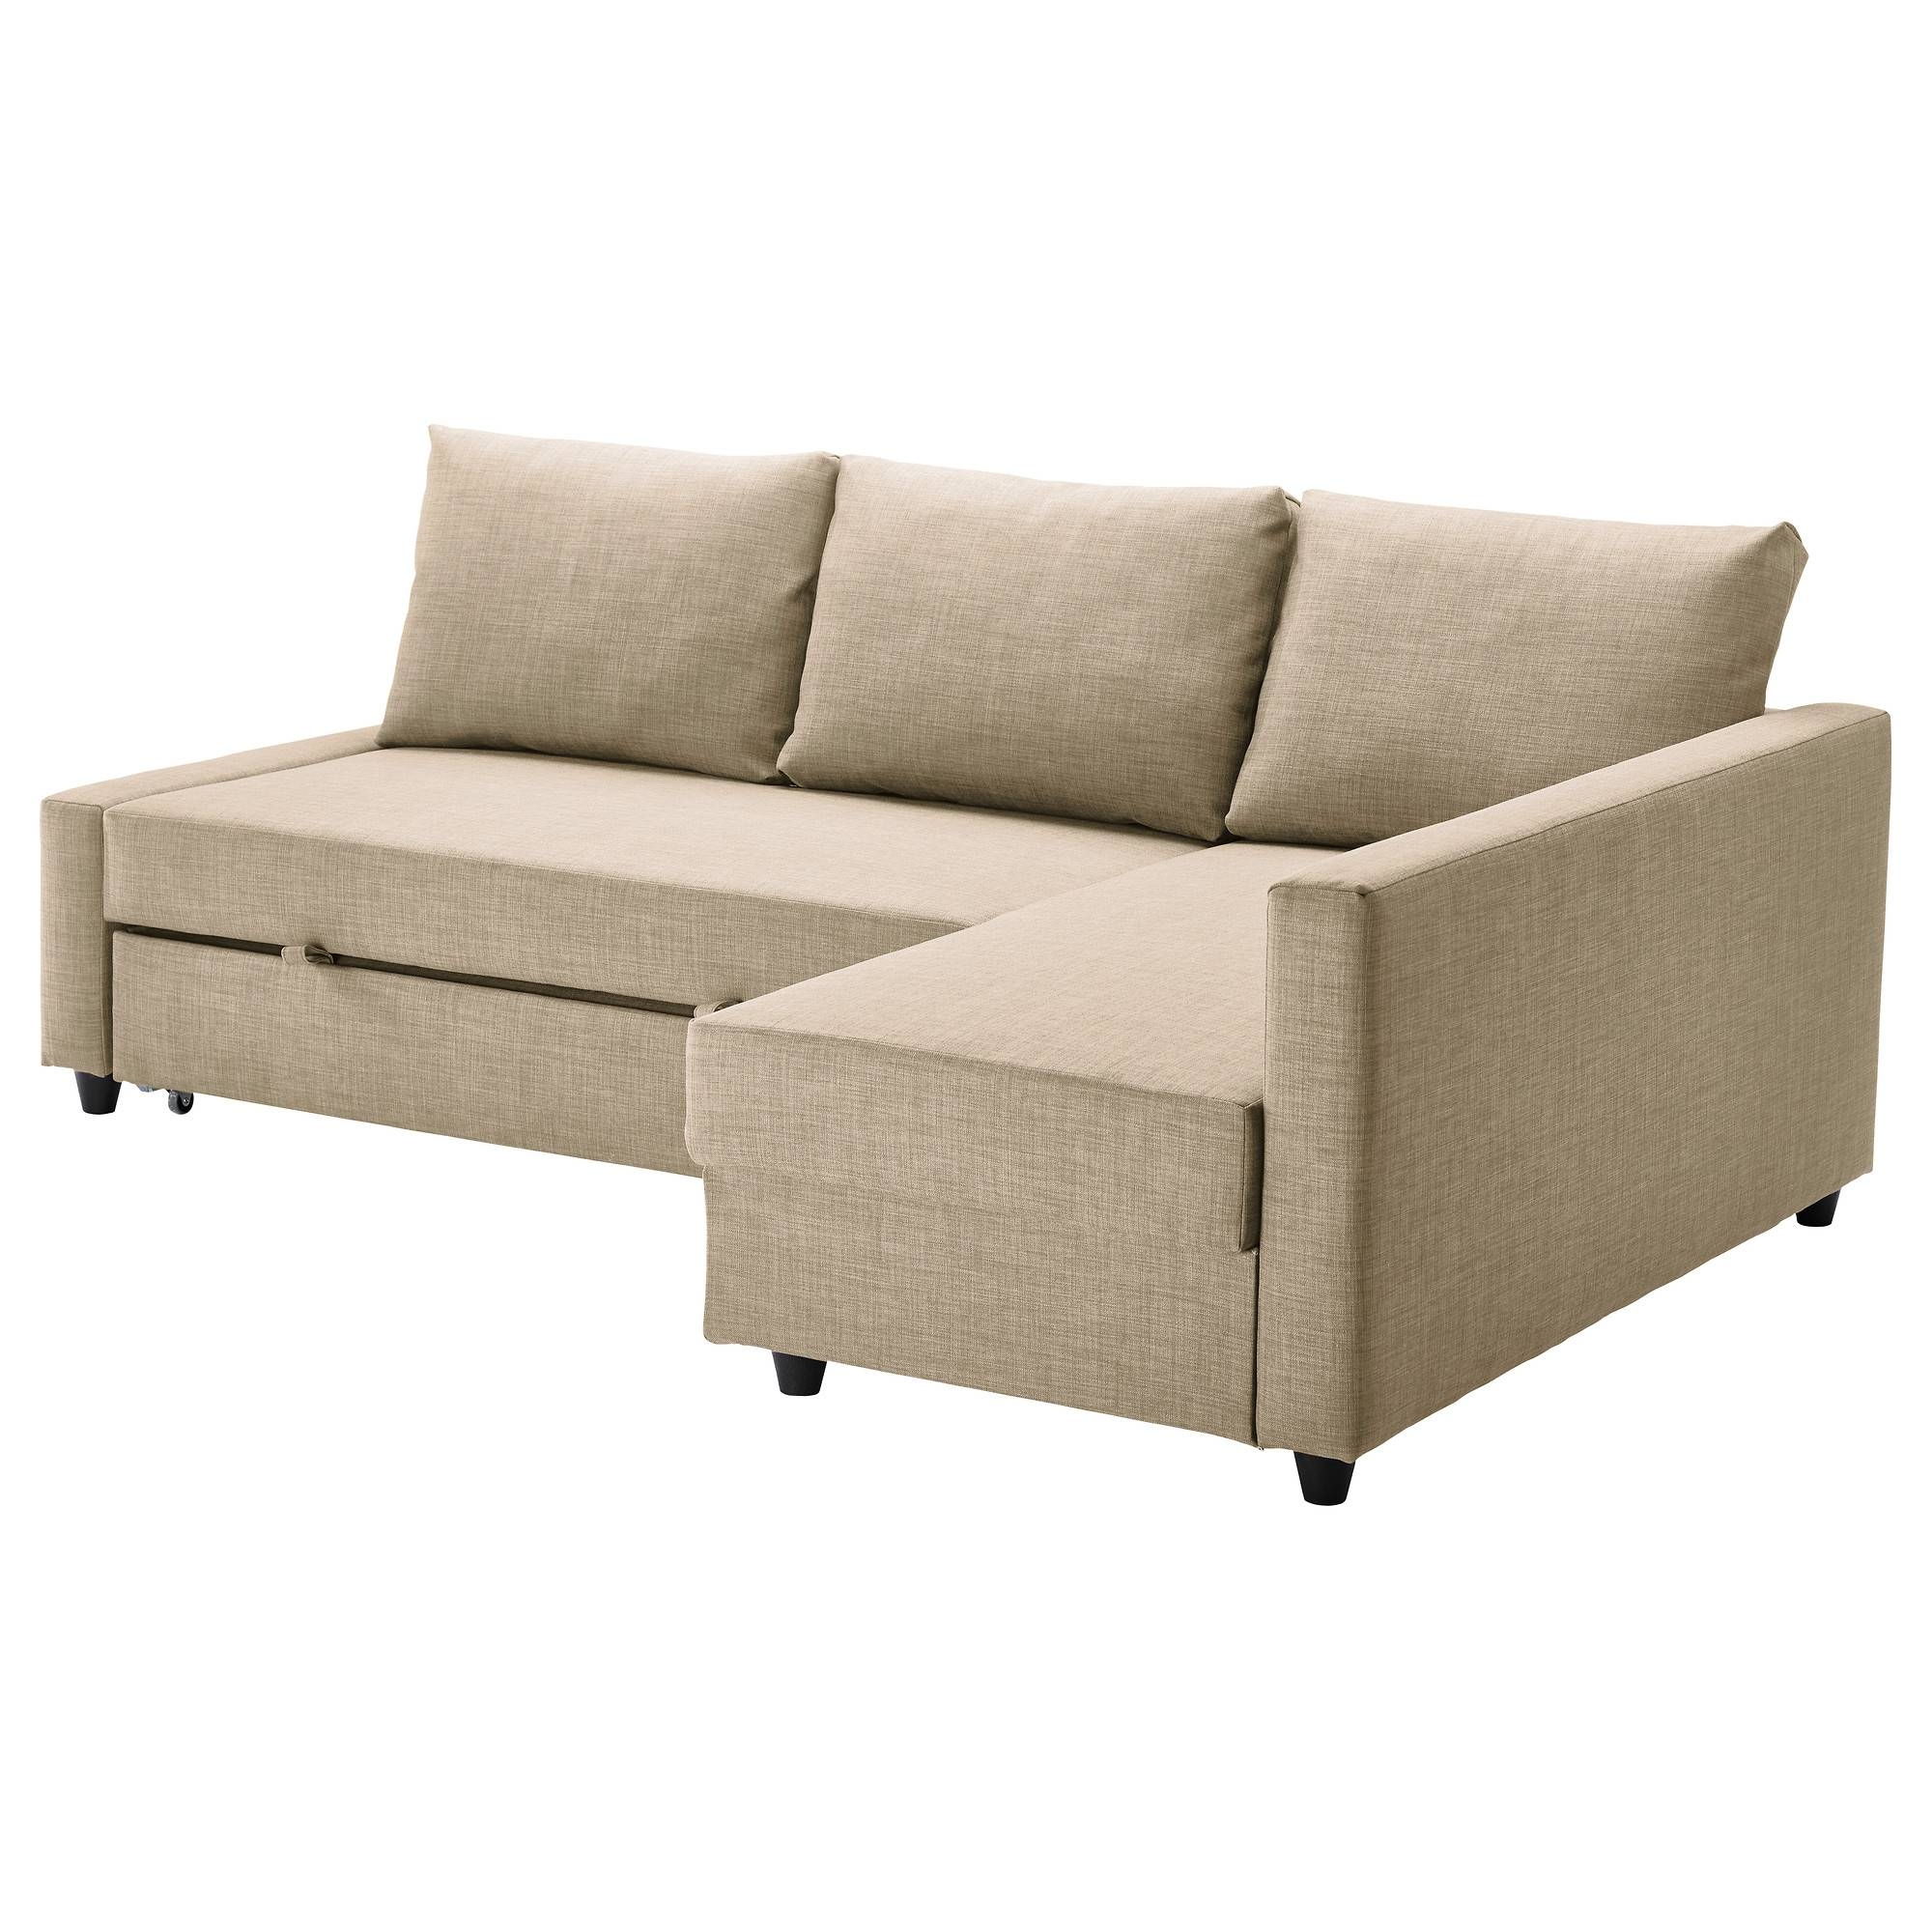 Friheten Sleeper Sectional,3 Seat W/storage - Skiftebo Dark Gray throughout Sectional Sofas With Sleeper And Chaise (Image 14 of 30)